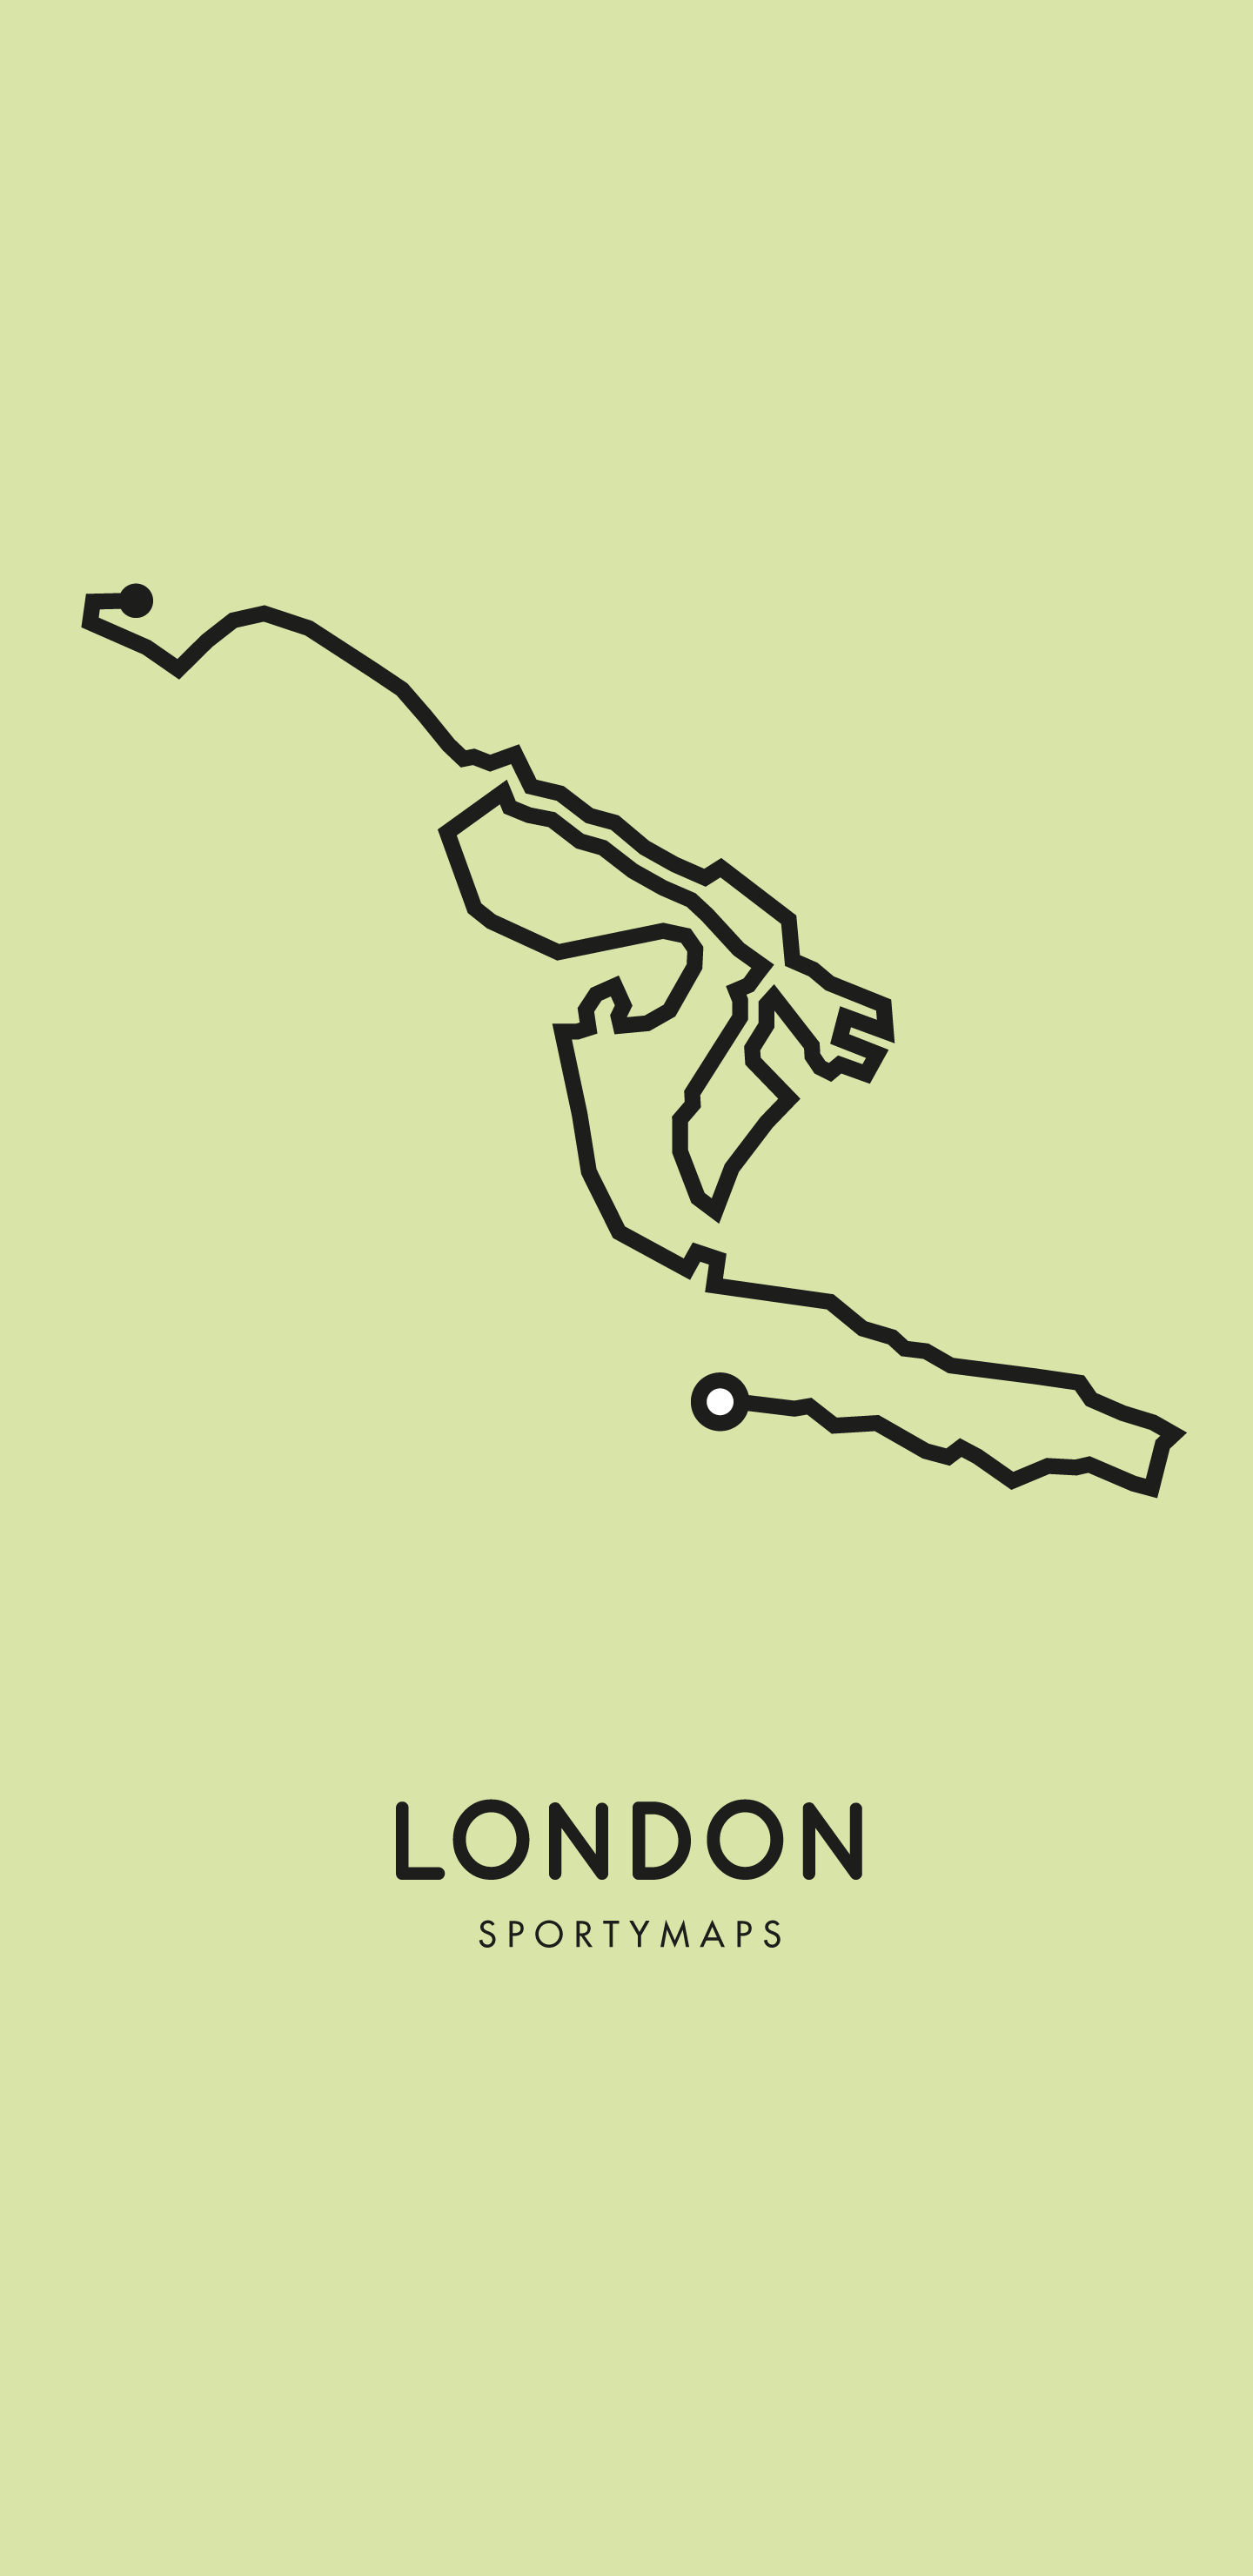 Sportymaps-London-marathon-green